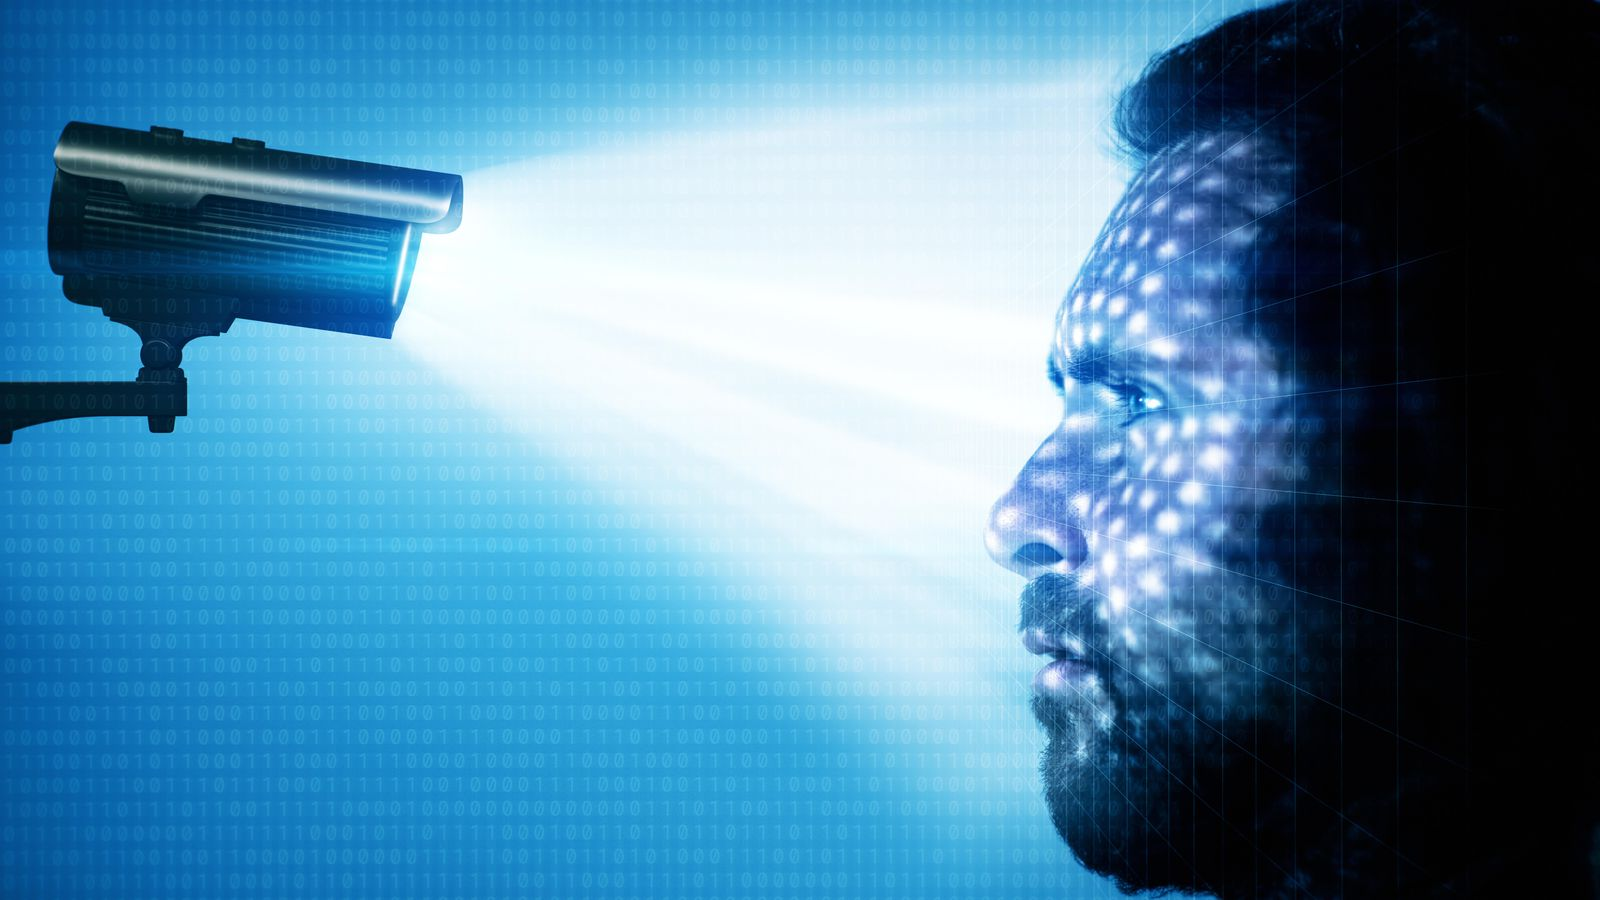 AWS chief says facial recognition should be regulated